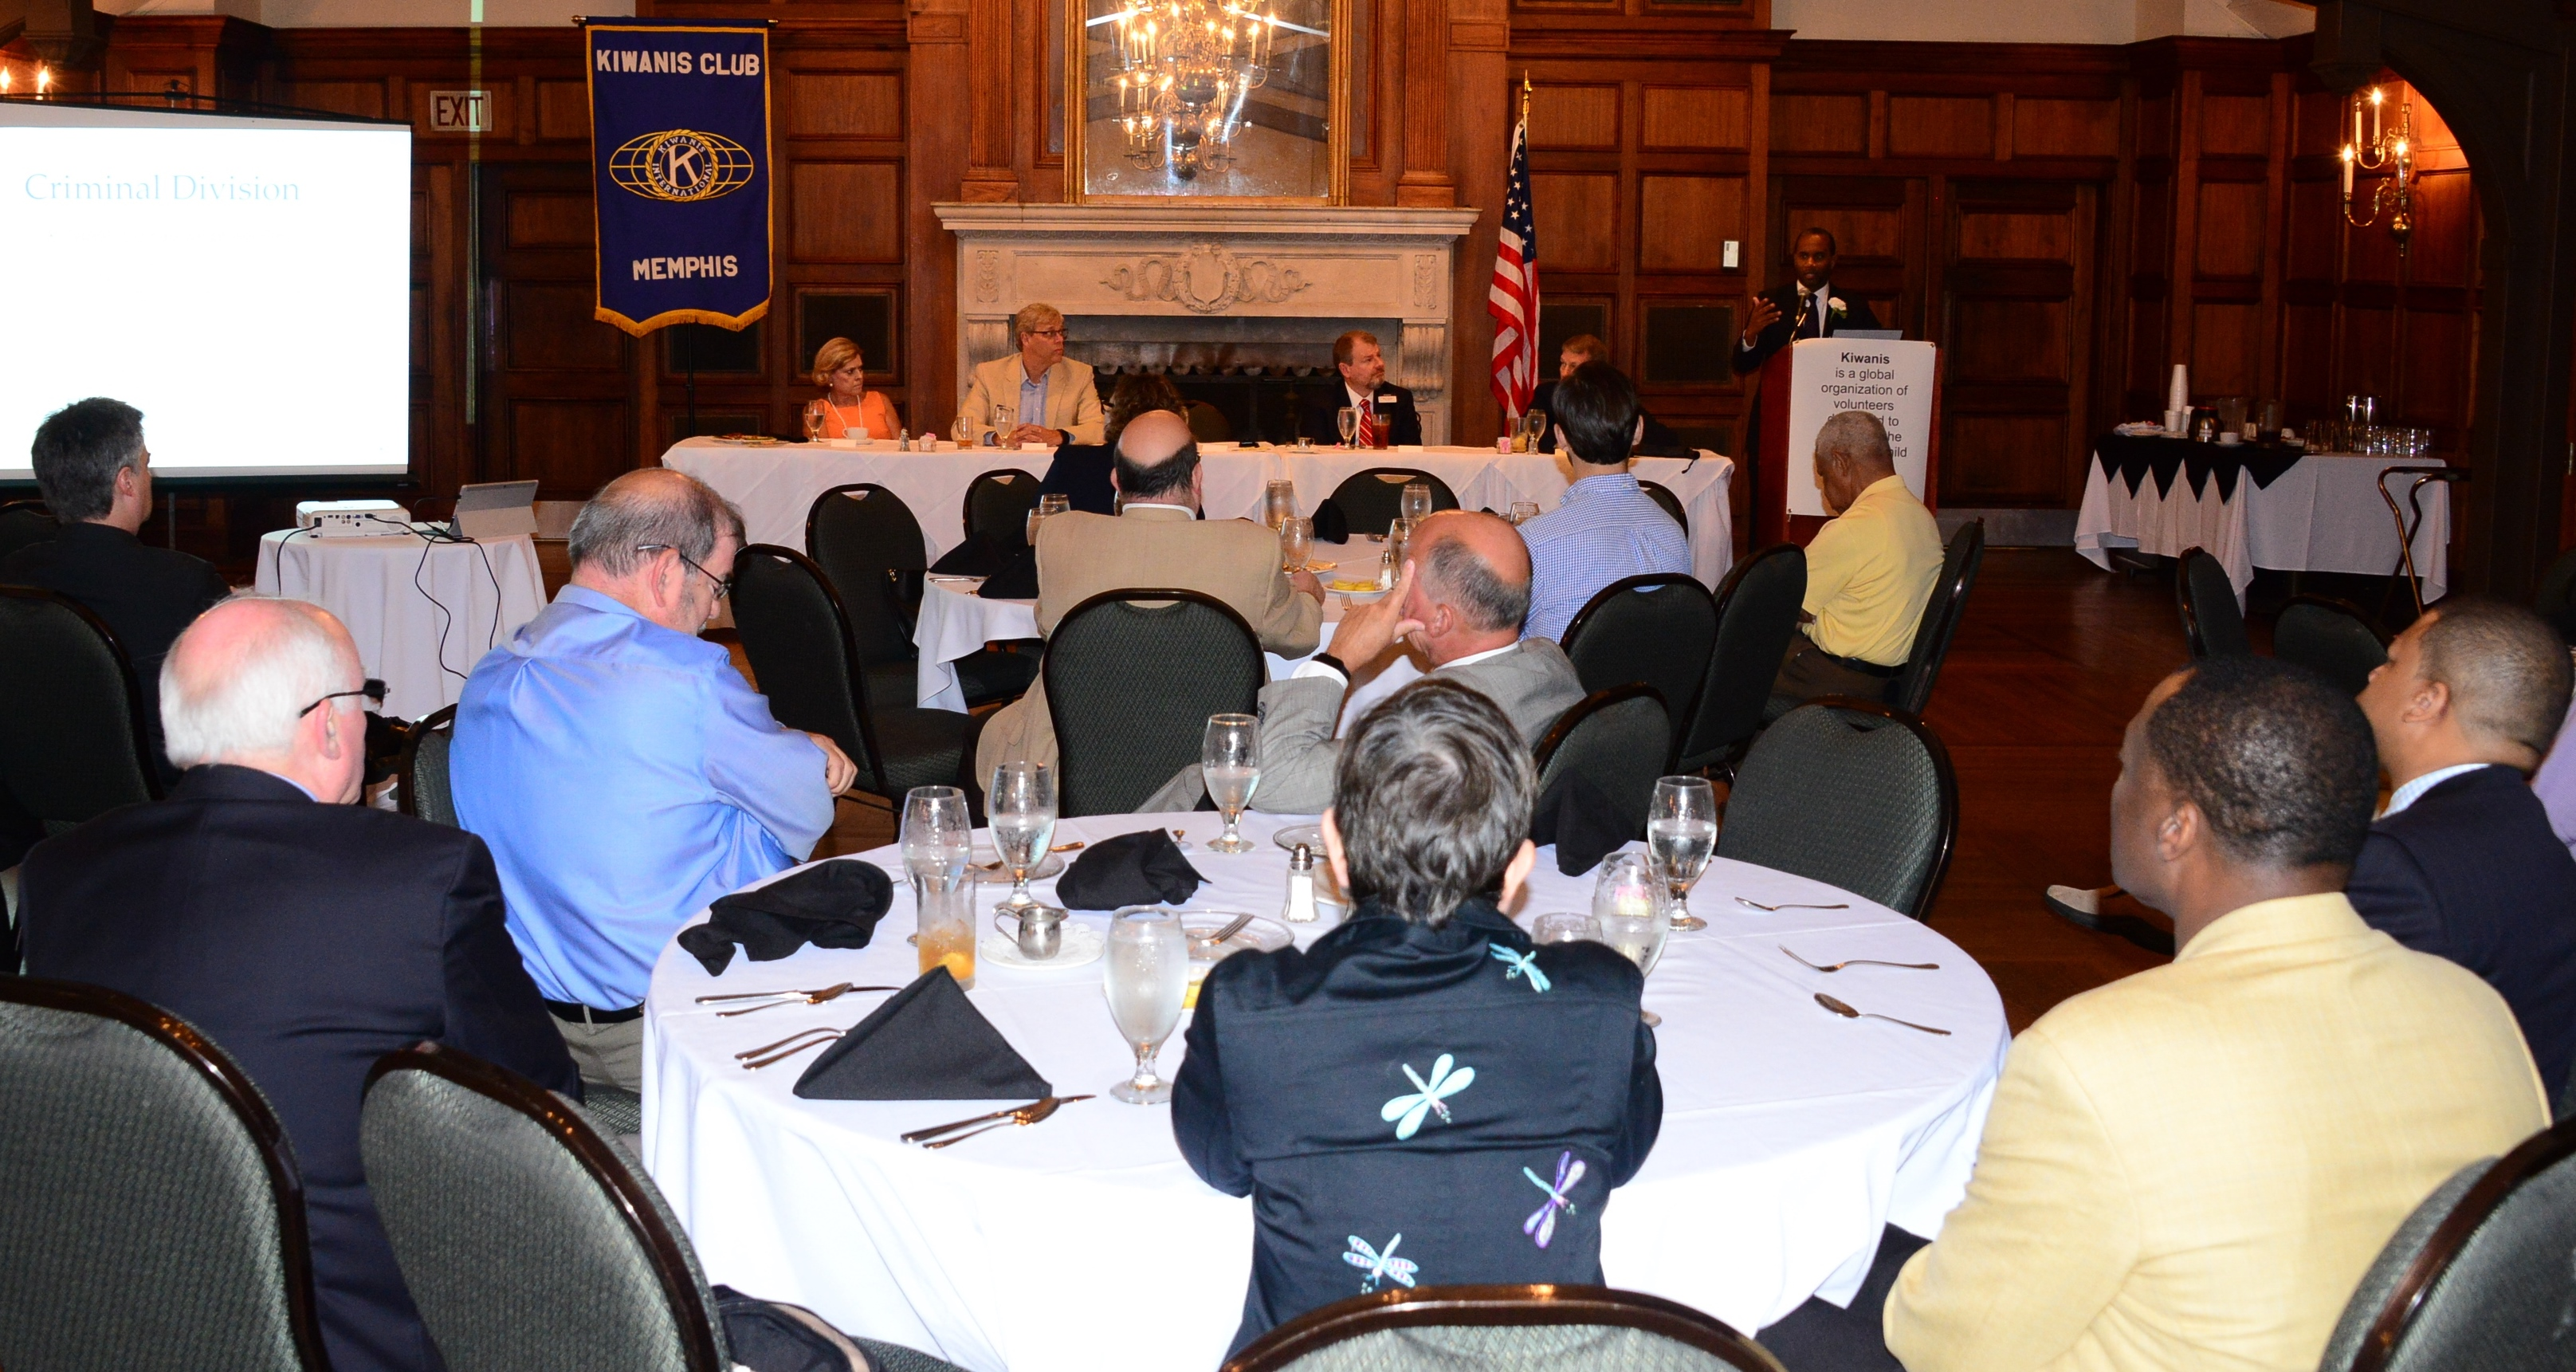 U.S. Attorney Stanton speaks to the Kiwanis Club of Memphis.